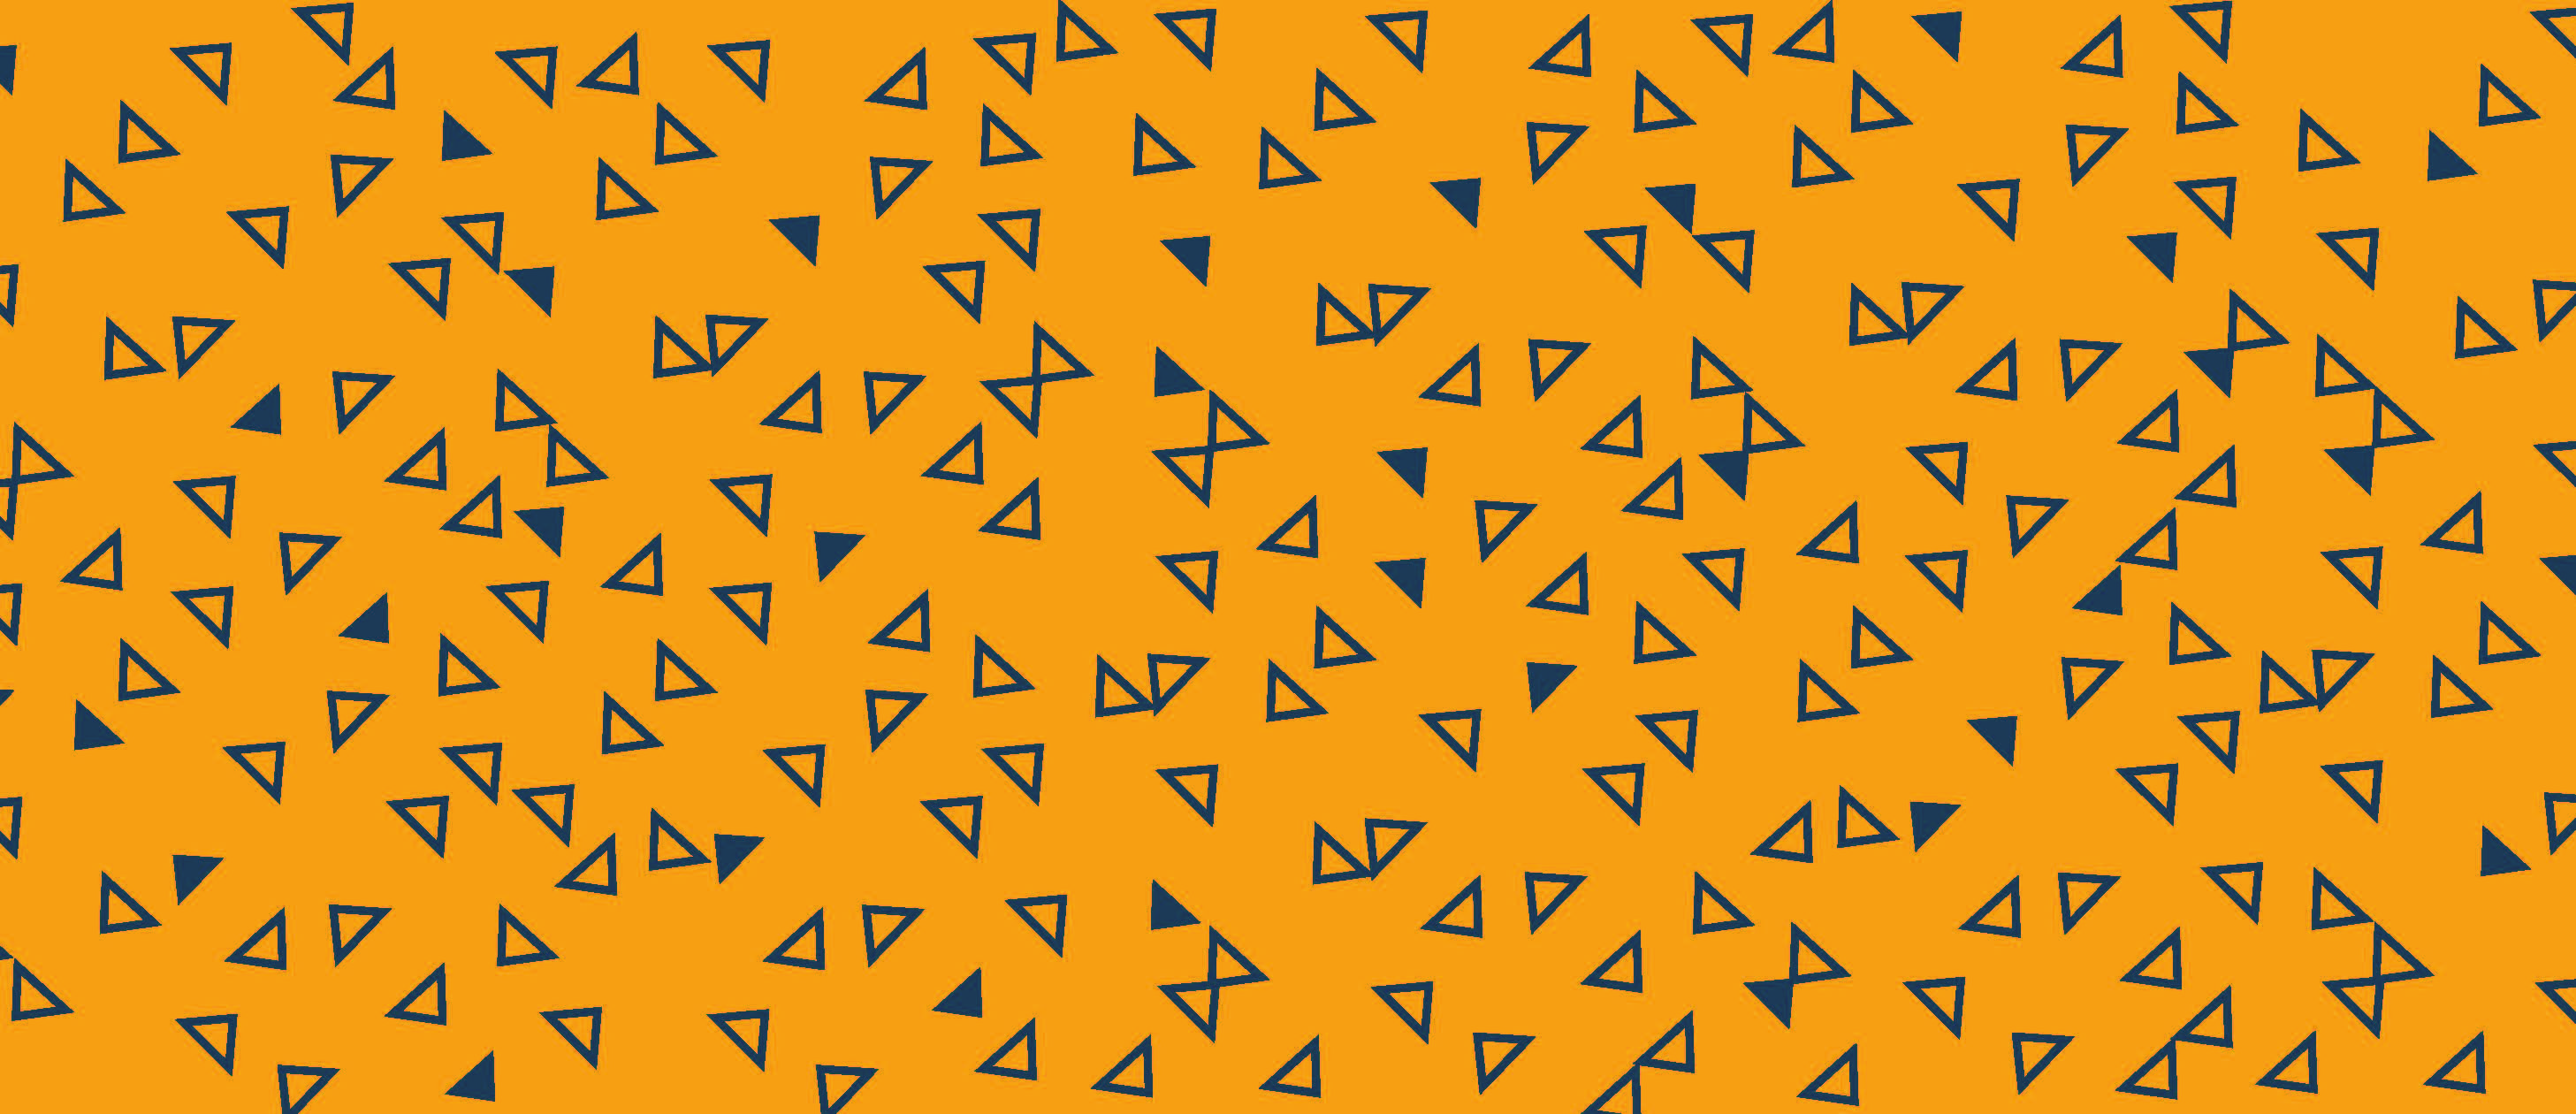 Another fun triangle pattern - awesome as a wall print!